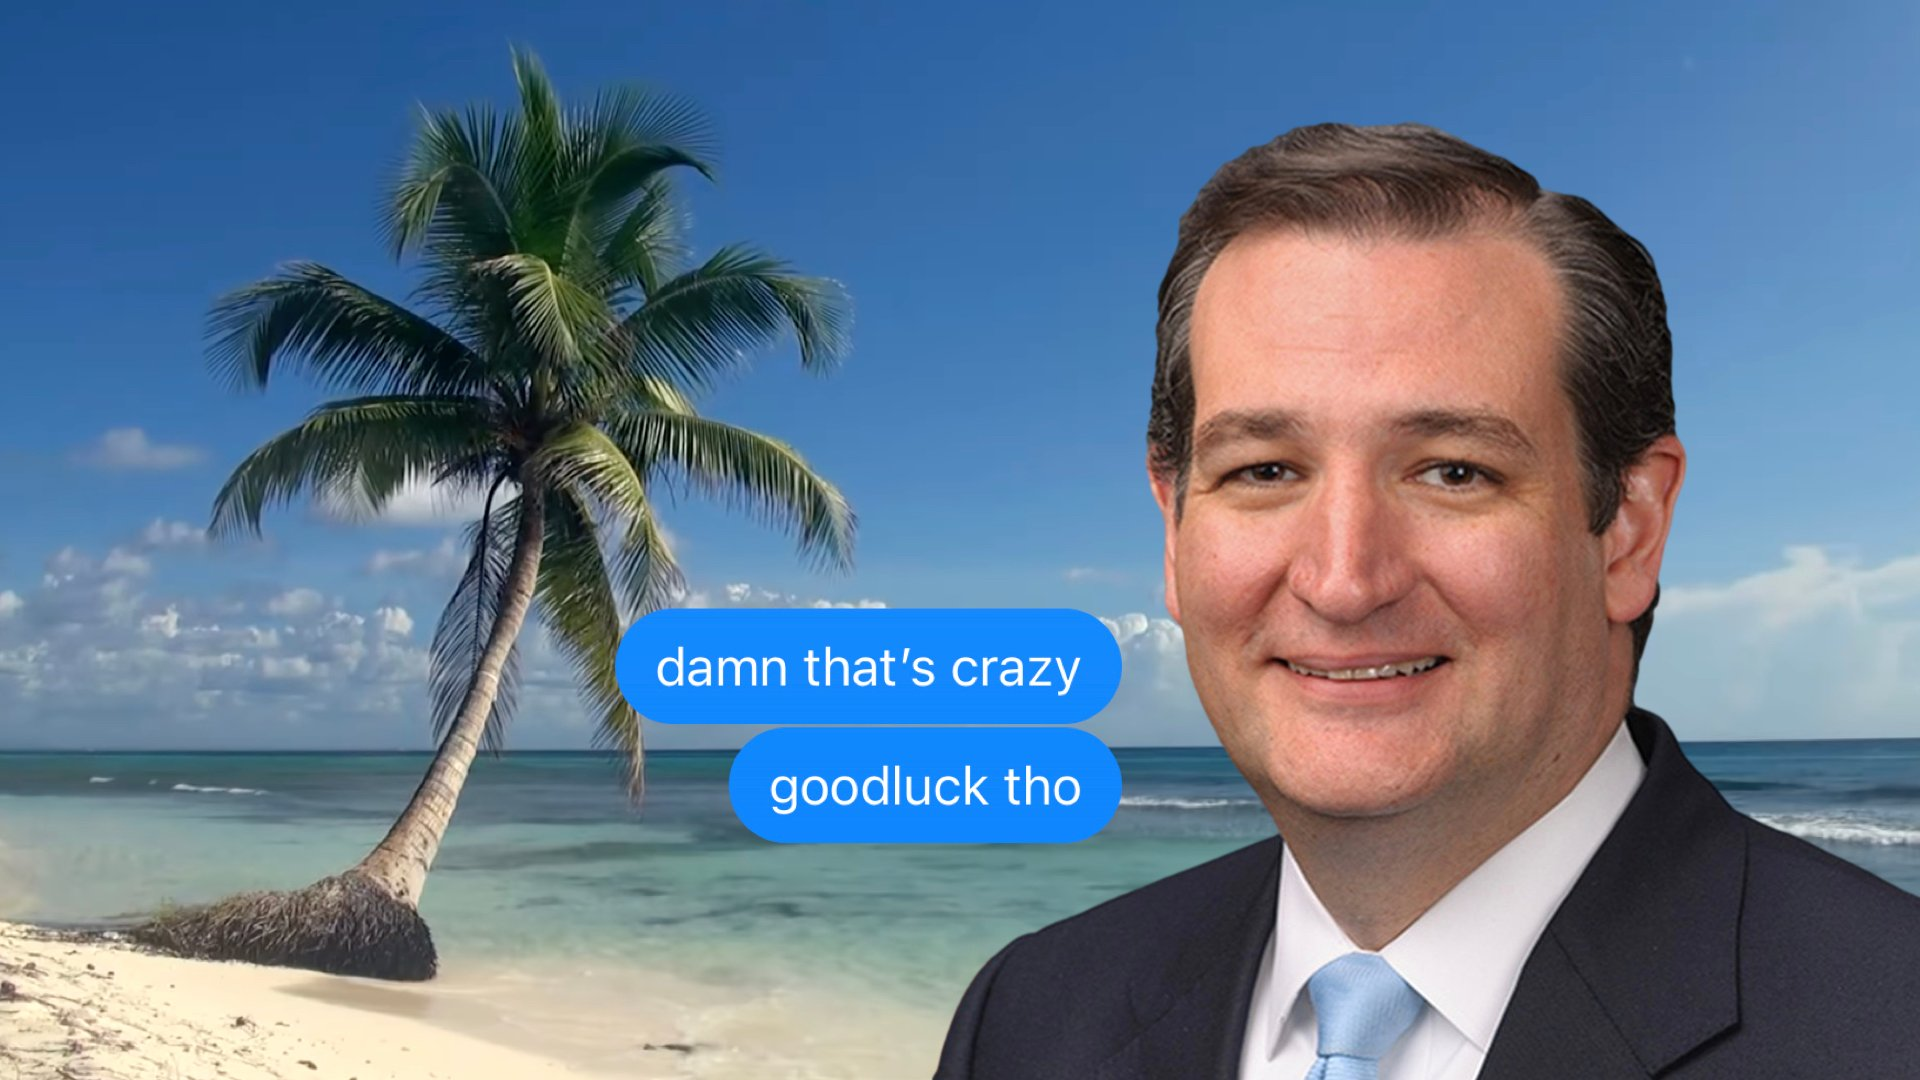 Ted Cruz Goes To Cancun Martin Scorsese Vs Streaming And This Week S Other Best Memes Ranked Digg